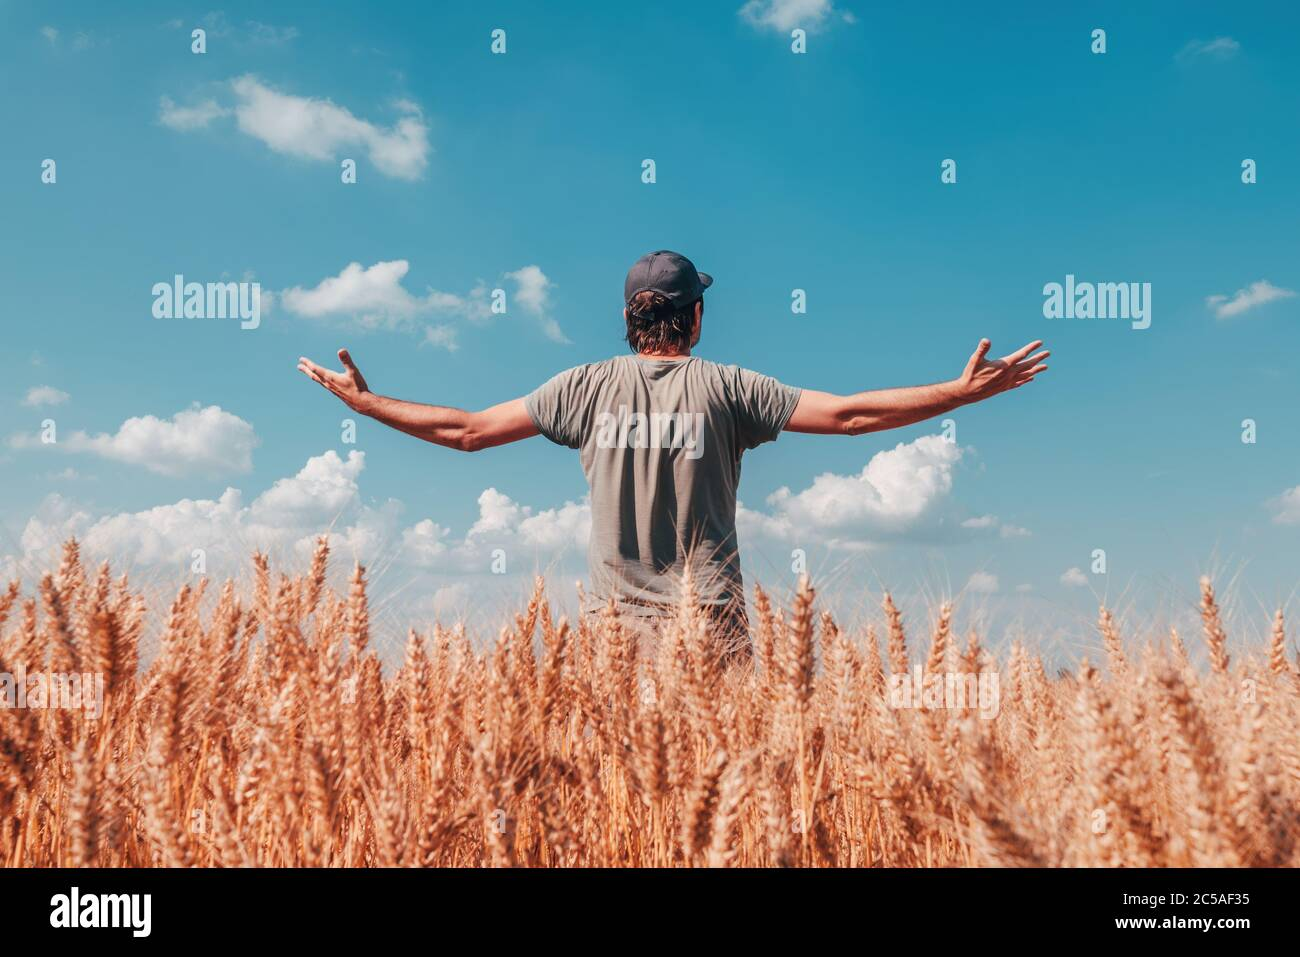 Successful wheat farmer standing in ripe cereal crop field on sunny summer day, just before the harvest Stock Photo